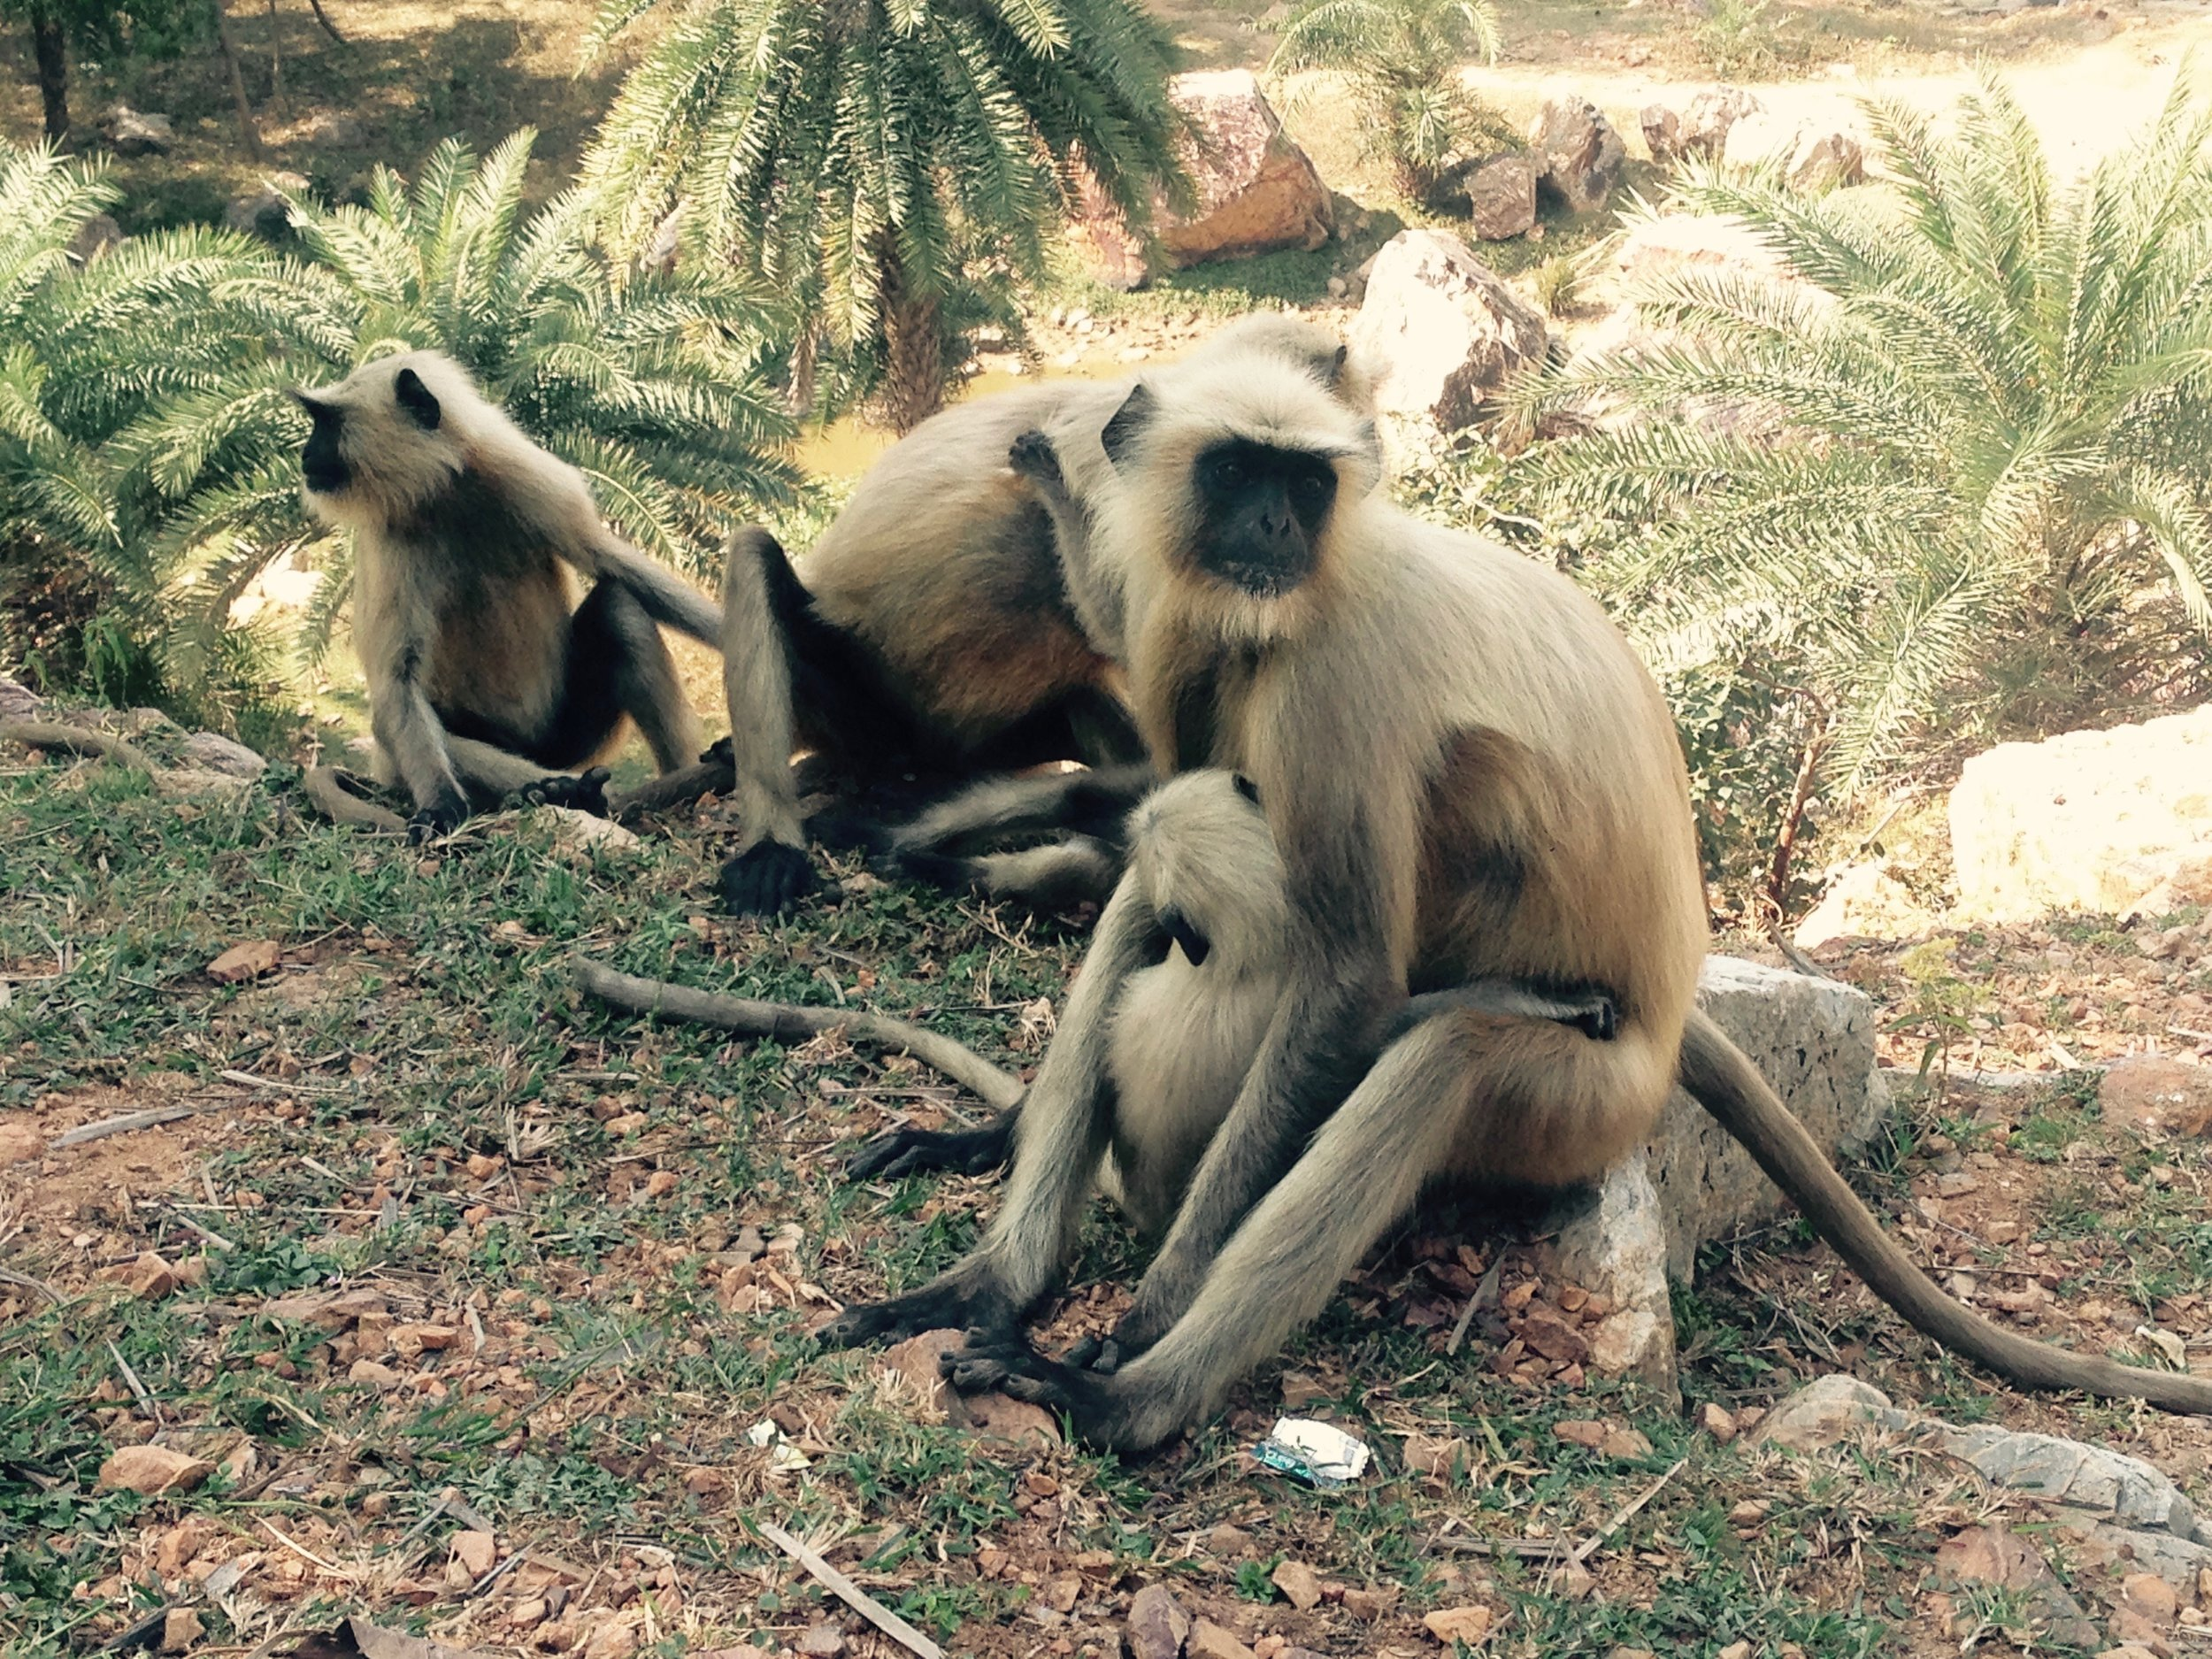 Langor monkeys chilling hillside by the cave -- so much tamer than the macaque breed from the Monkey Temple